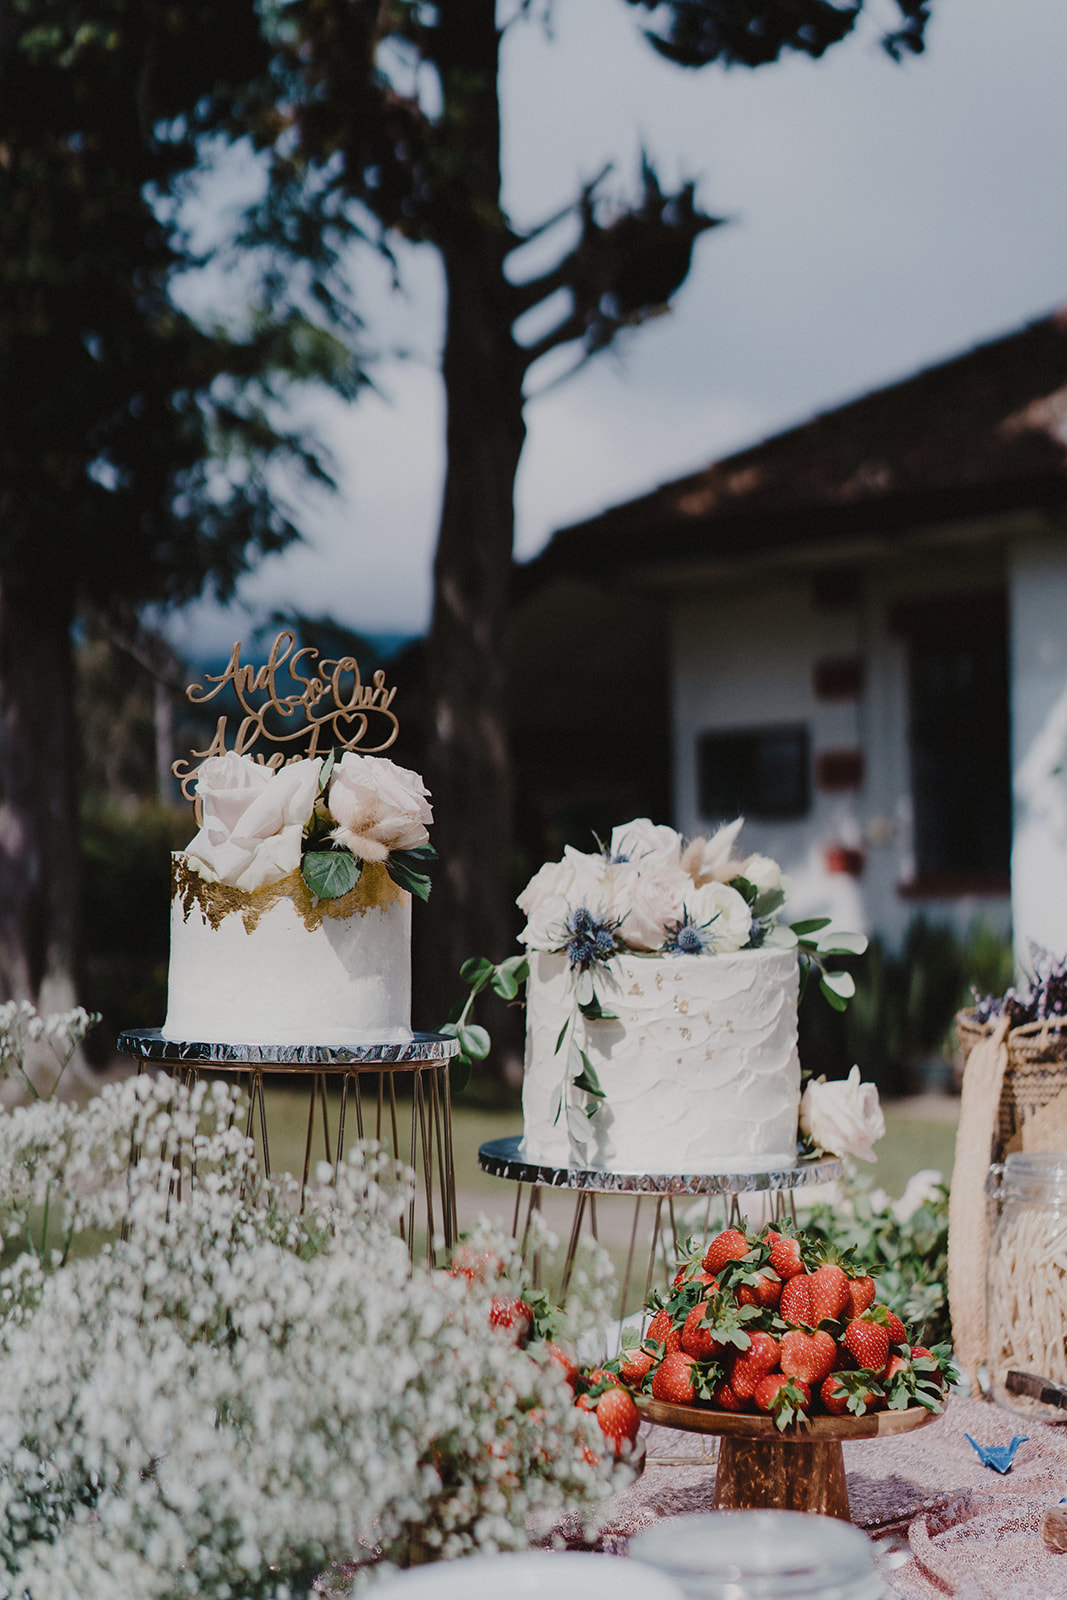 the floral-covered cake topping that says 'and so our adventure continues'. flavors: chocolate mint chip, lotus biscoff, both off-white buttercream adorned with fresh flowers.